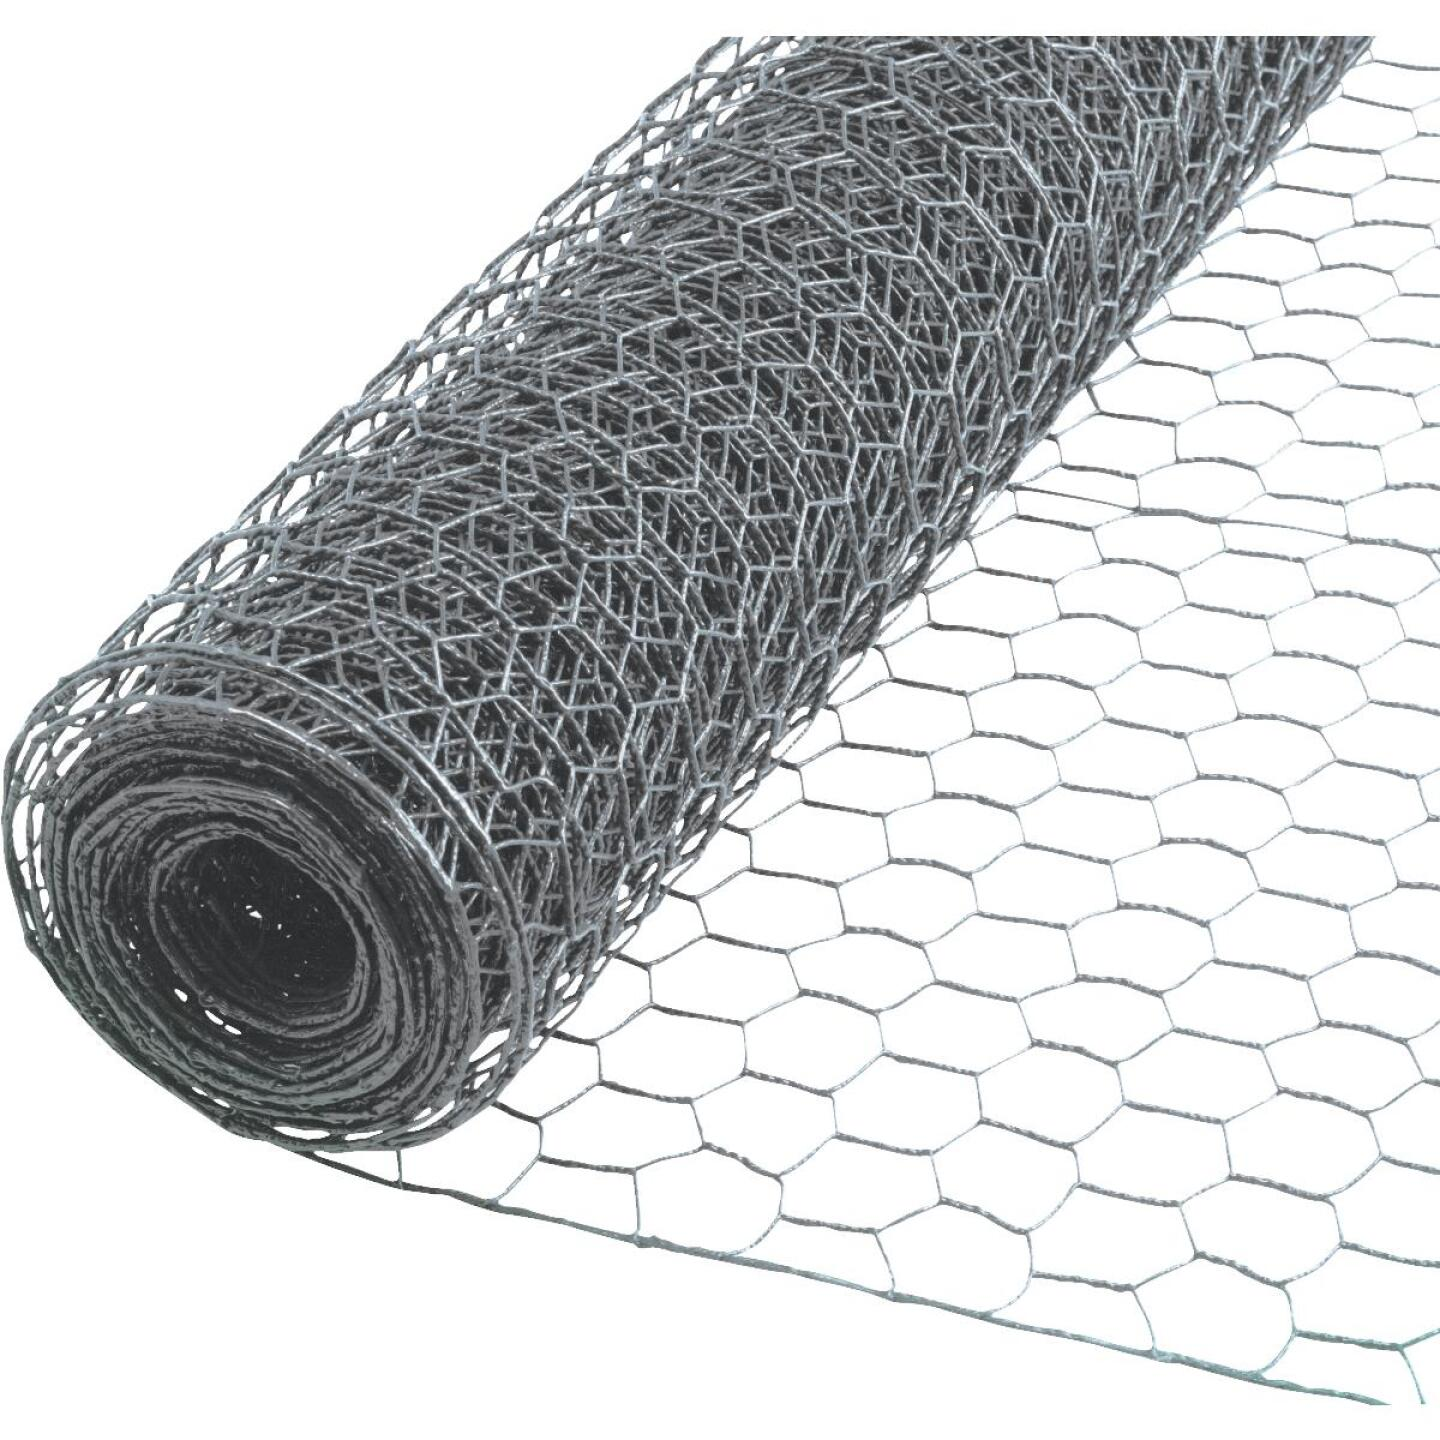 1/2 In. x 36 In. H. x 10 Ft. L. Hexagonal Wire Poultry Netting Image 1